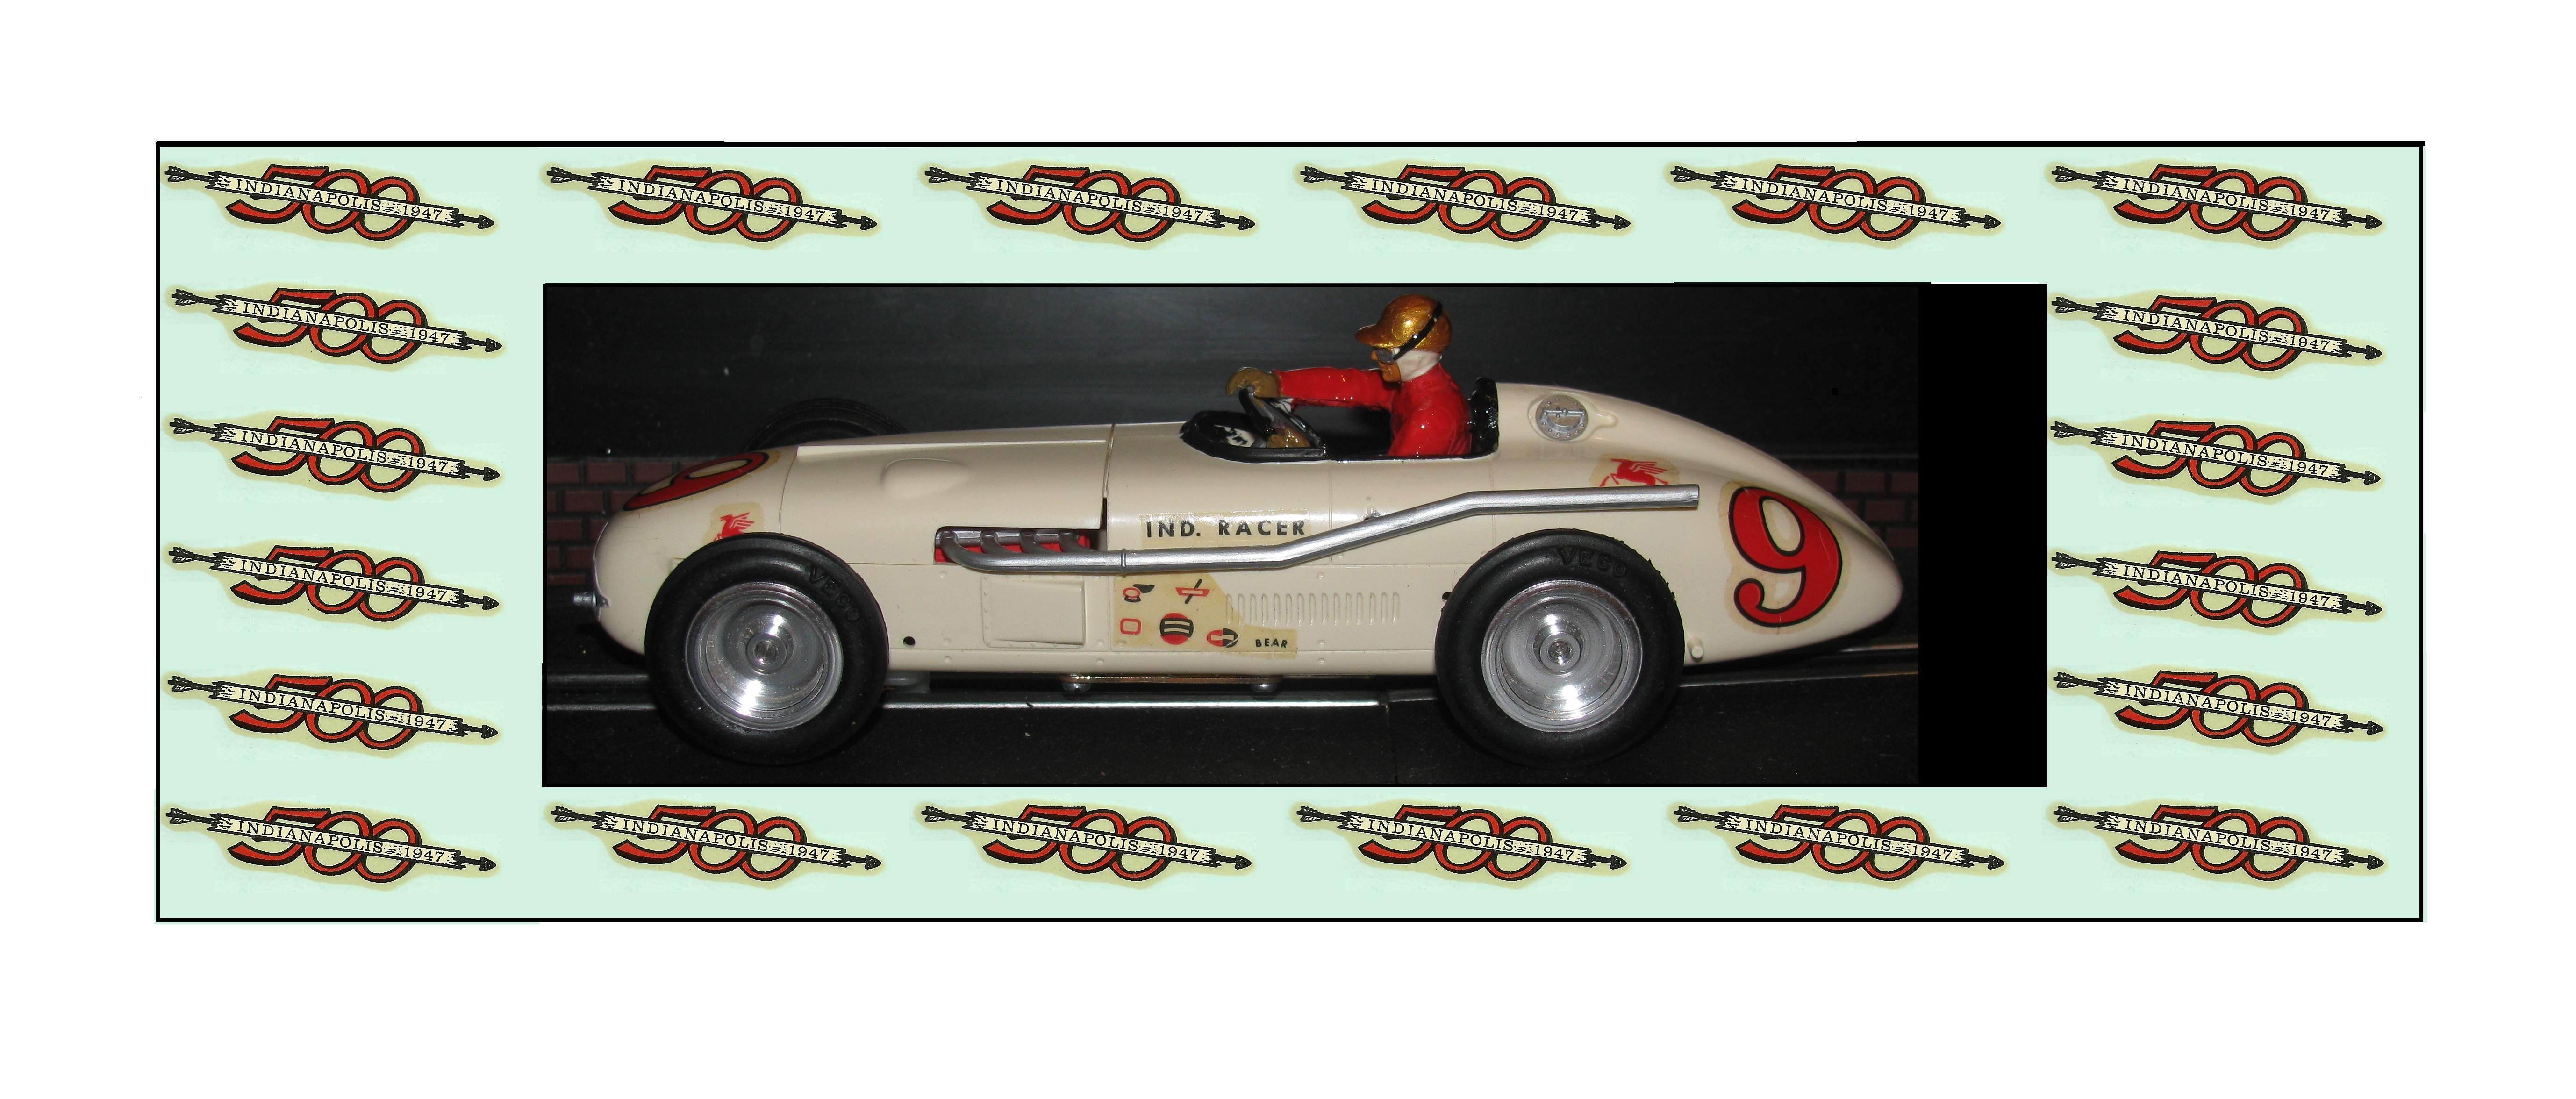 "* SOLD * Vintage Monogram Indy 500 Racer ""Racing Special"" Slot Car – Car 9"